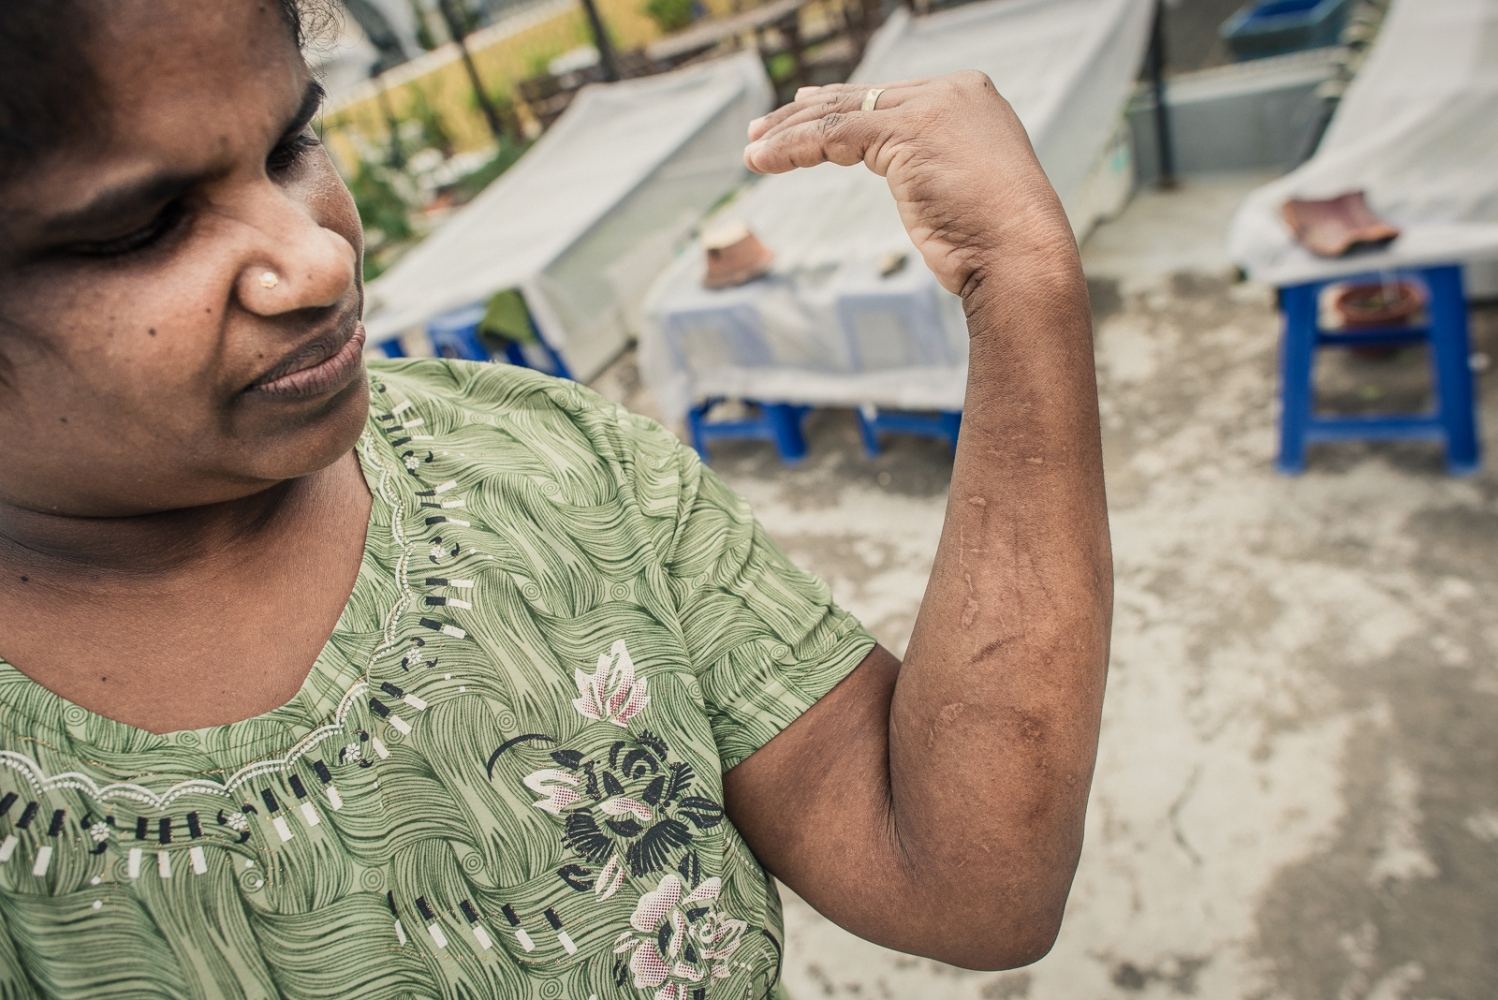 Sri Lankan Suppiah Jeyalutchummy has had three employers in SIngapore. She left her first employer as she was forced illegaly to work for their business. Her second employer made her illegally work in other family member's homes. She was also burned on her arms with metal utensils heated on the stove as a form of punishment, in some cases the complaint from her employer and stated cause for the punishment was that Ms Jeyalutchummy is left handed and was not using her right hand for her work. She ran away and is currently on her third employers, with whom she has a good relationship. She was staying in the HOME shelter while the Ministry of Manpower (MOM) investigated the fact that her second employer blacklisted her after she ran away, which became an issue when her work permit came up for renewal. The MOM found in Ms Jeyalutchummy's favour and renewed her work permit, so she is able to return to her current employment. Abuse of domestic workers ranges from physical and verbal abuse, sexual assault, punative action for perceived wrongs, violation of contracted rights and witheld pay. As Foreign domestic workers in Singapore are required by law to live with their employer, many who suffer abuses and have disputes with their employer feel they have no choice but to run away and seek shelter with their embassy or NGOs such as HOME.